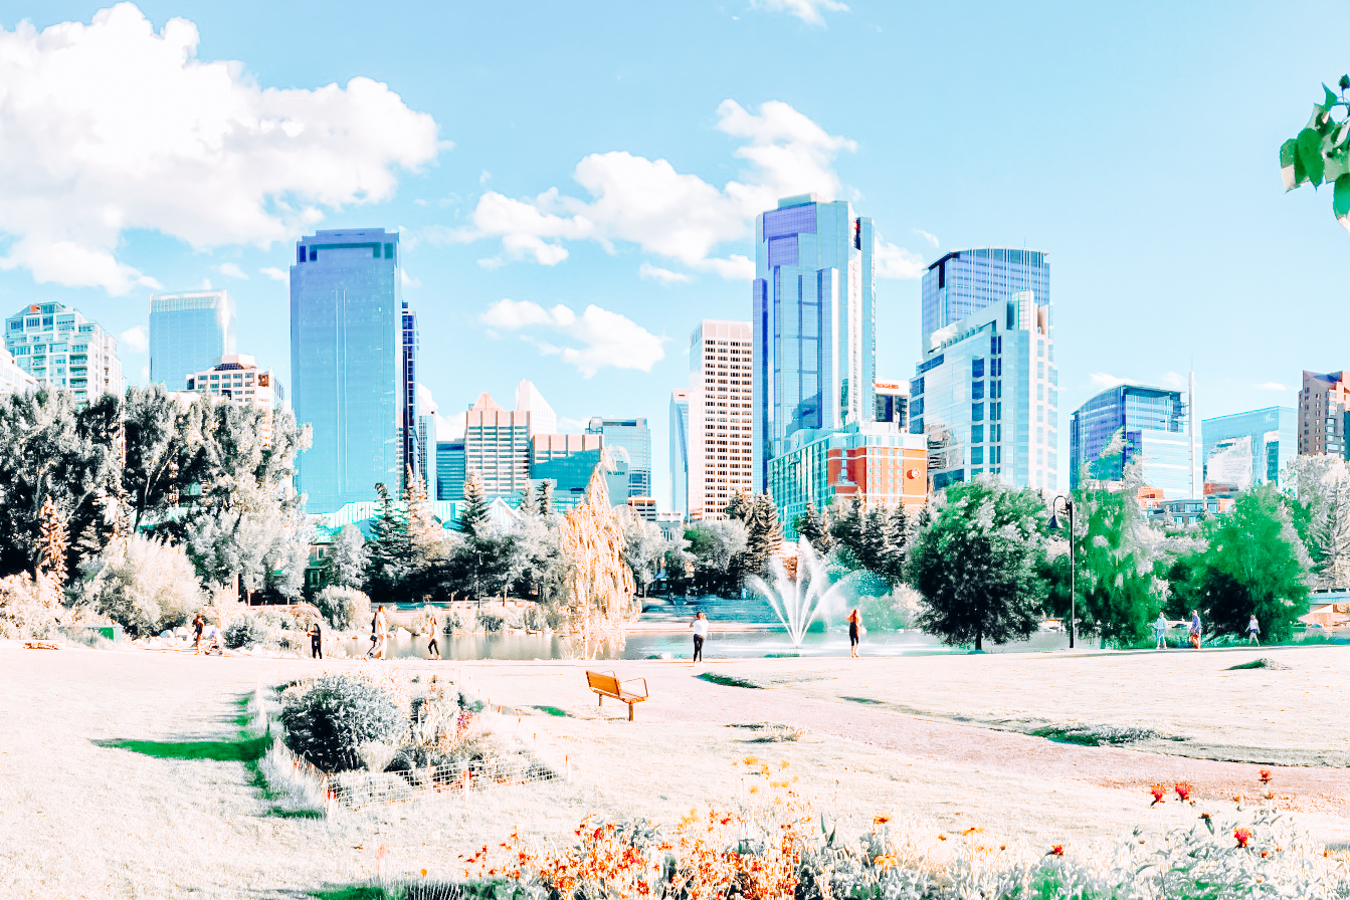 Grass, trees, and buildings in Calgary